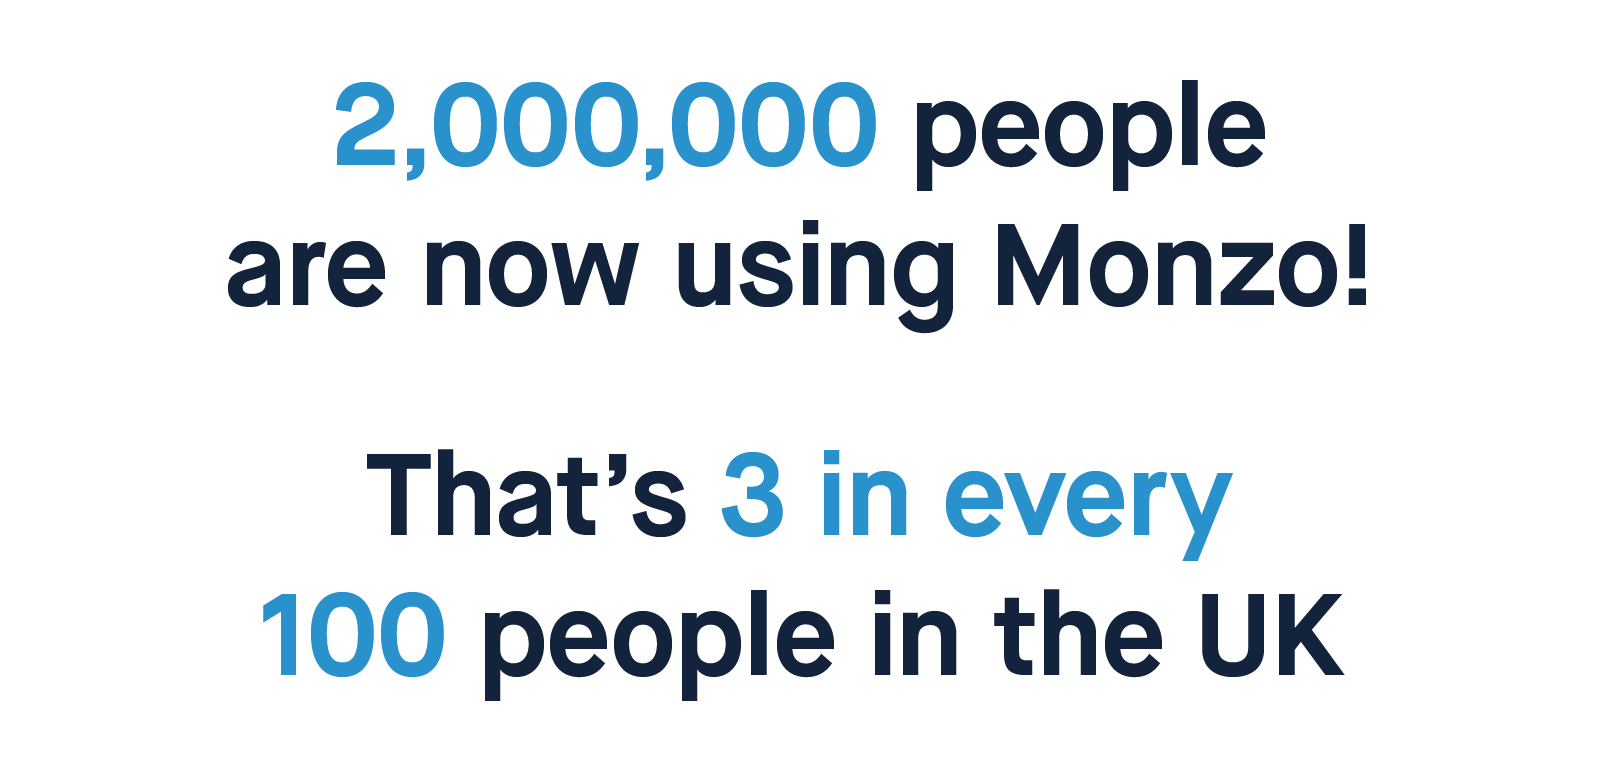 2,000,000 people are now using Monzo! That's 3 in every 100 people in the UK